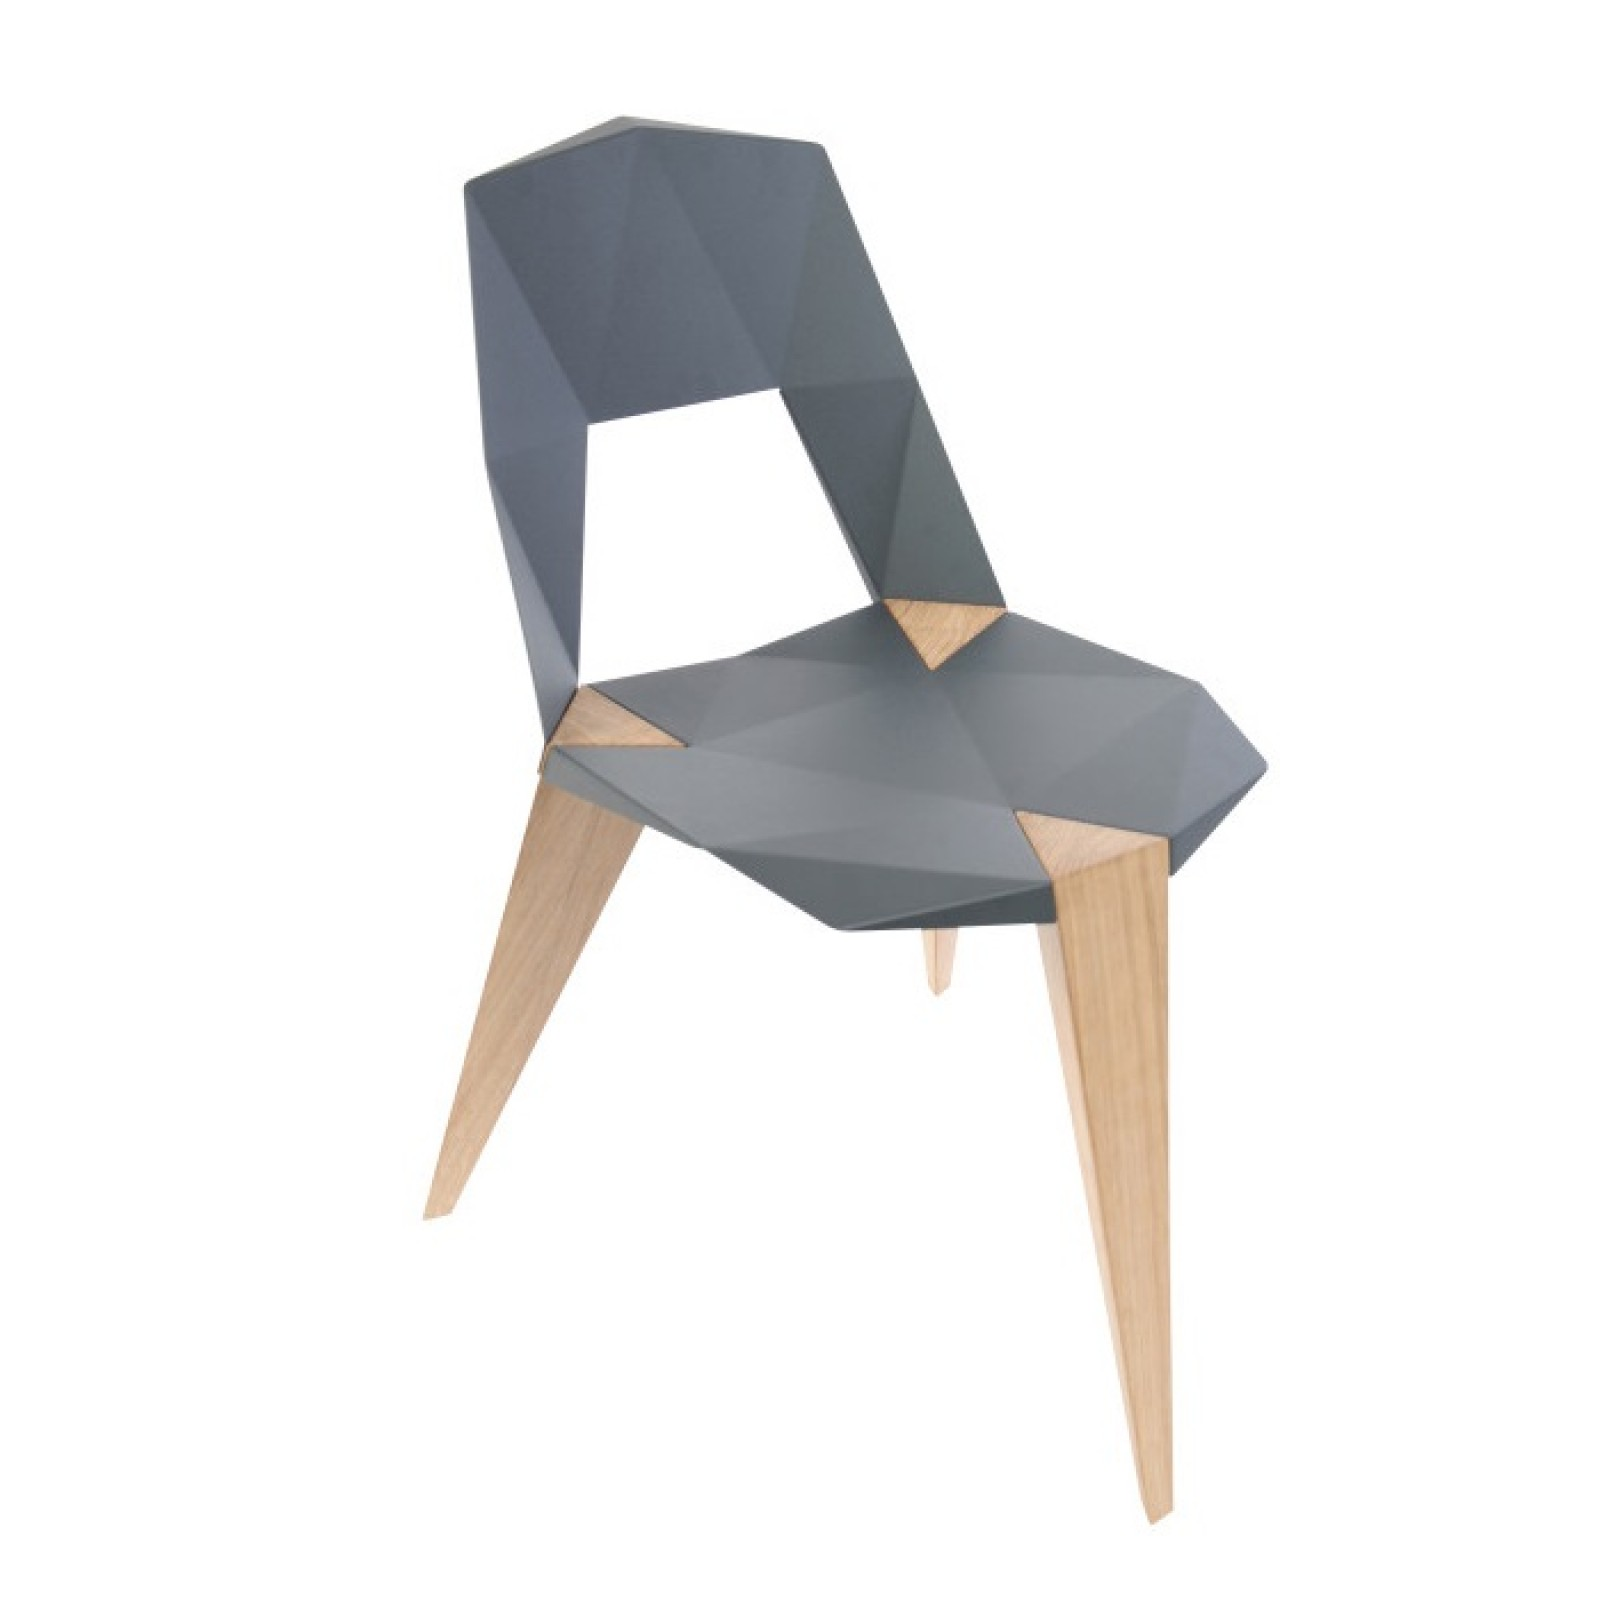 Pythagoras Chair with Oak Legs - Sander Mulder